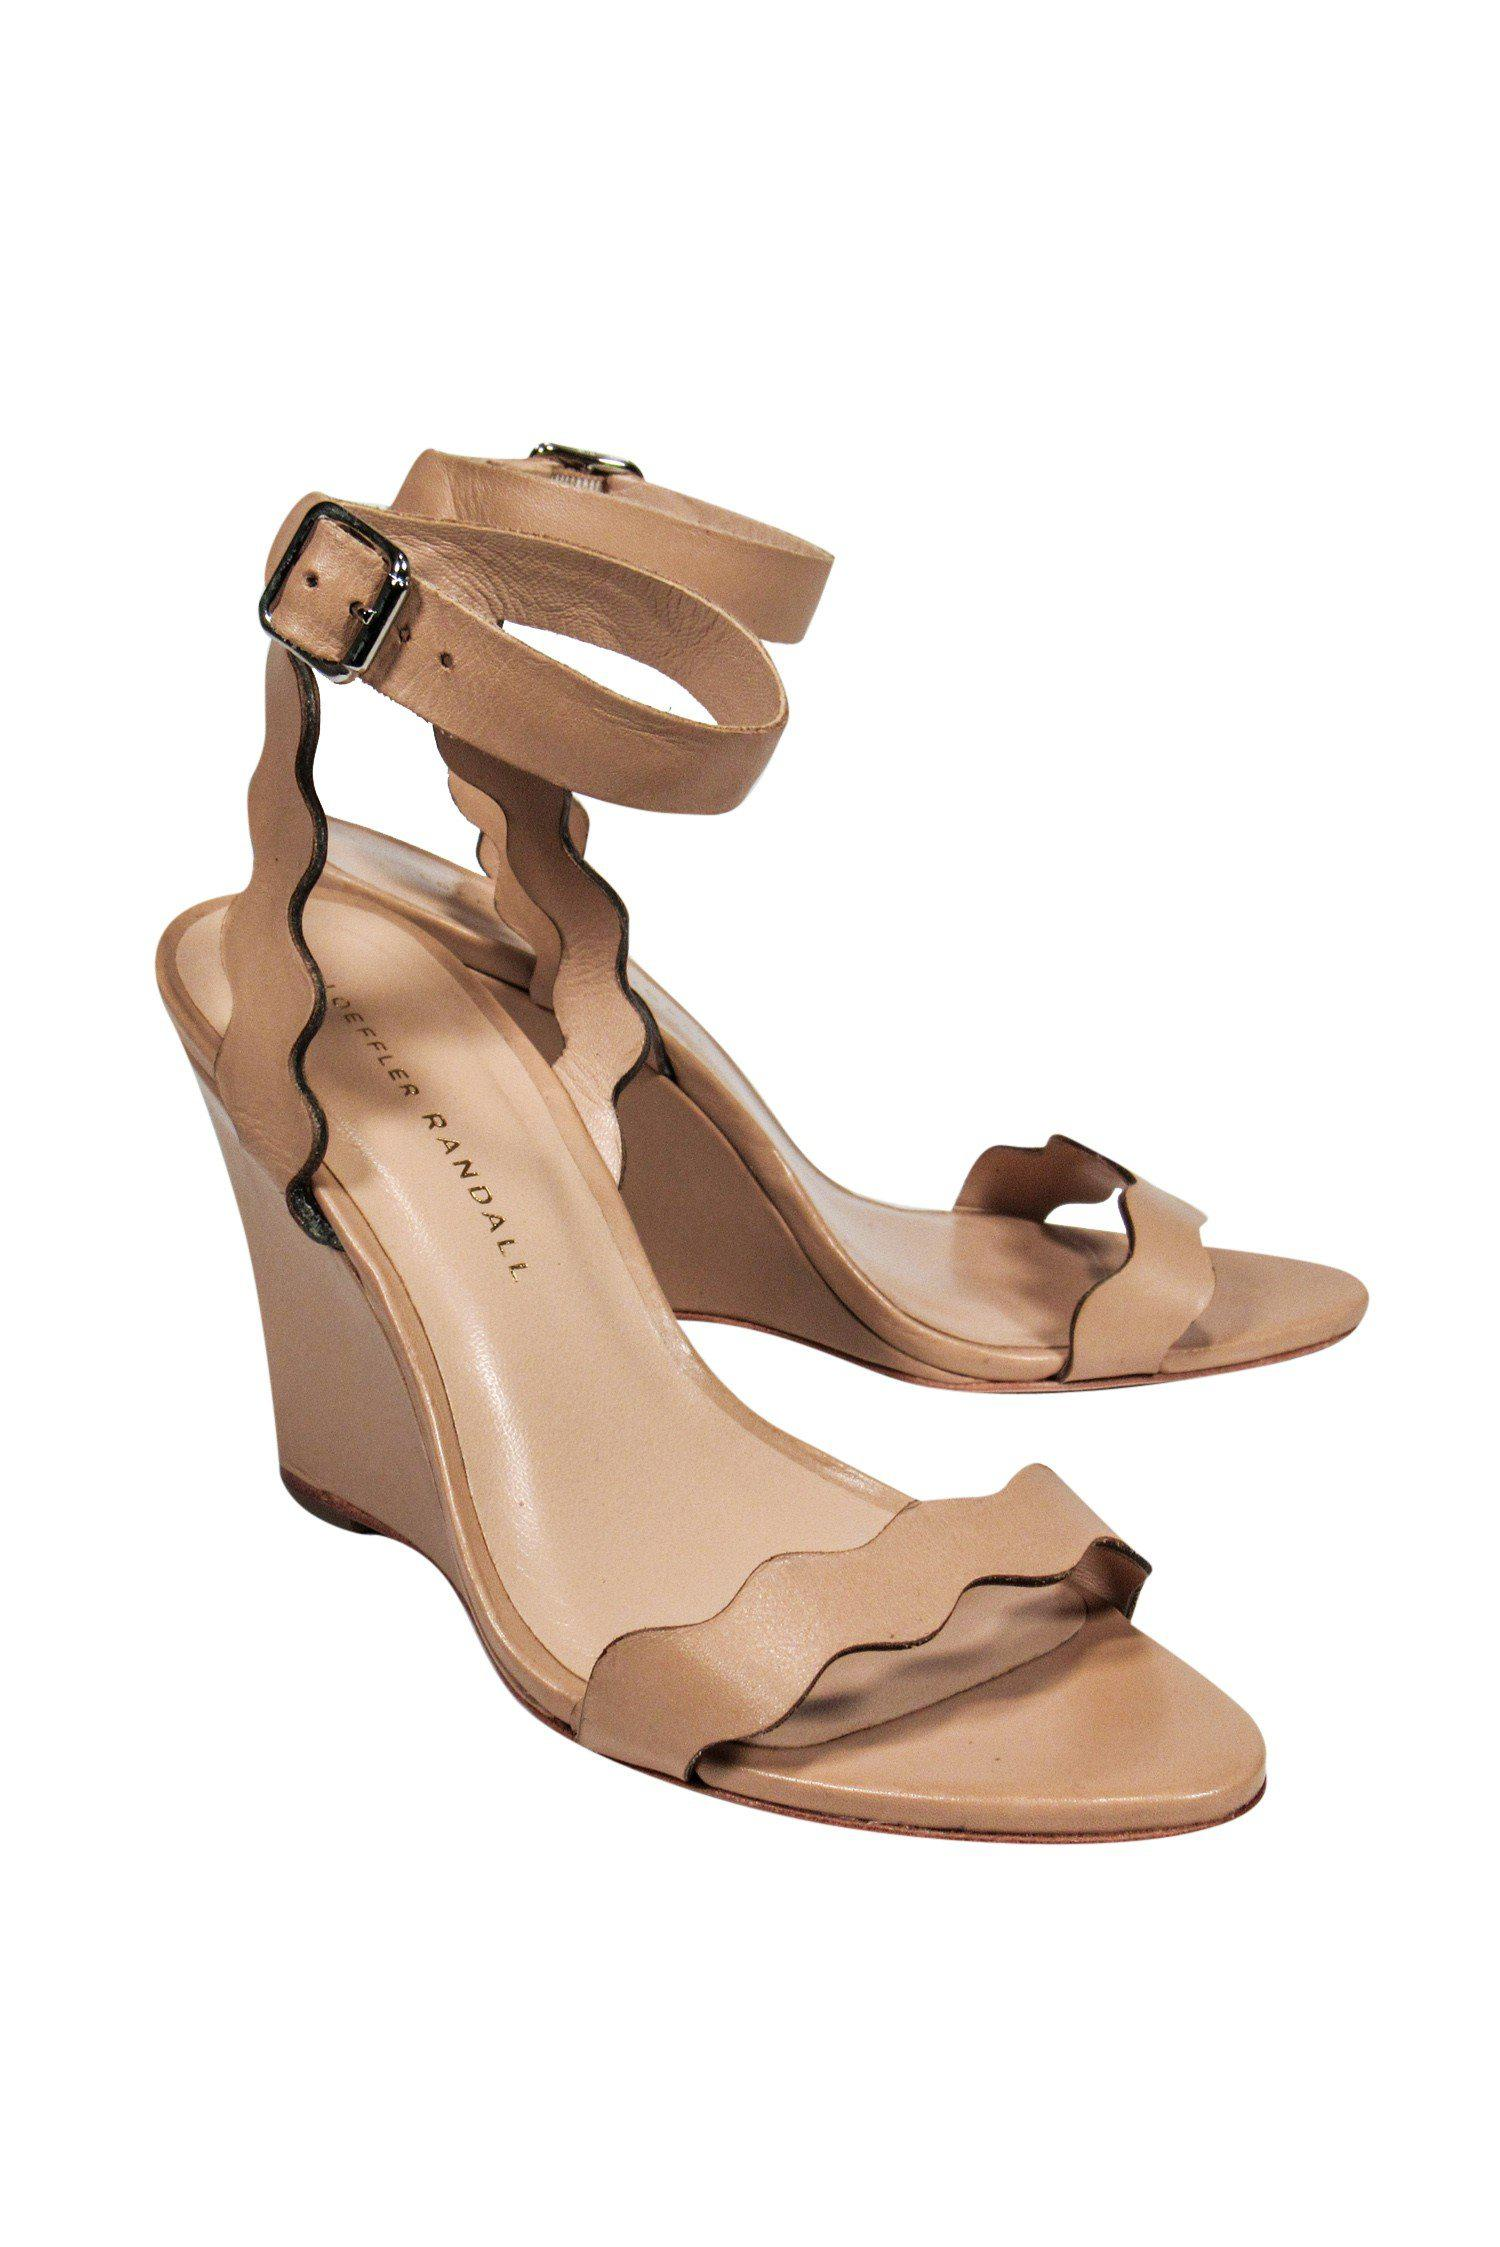 Loeffler Randall - Tan Leather Wave Cutout Wedge Sandals Sz 7